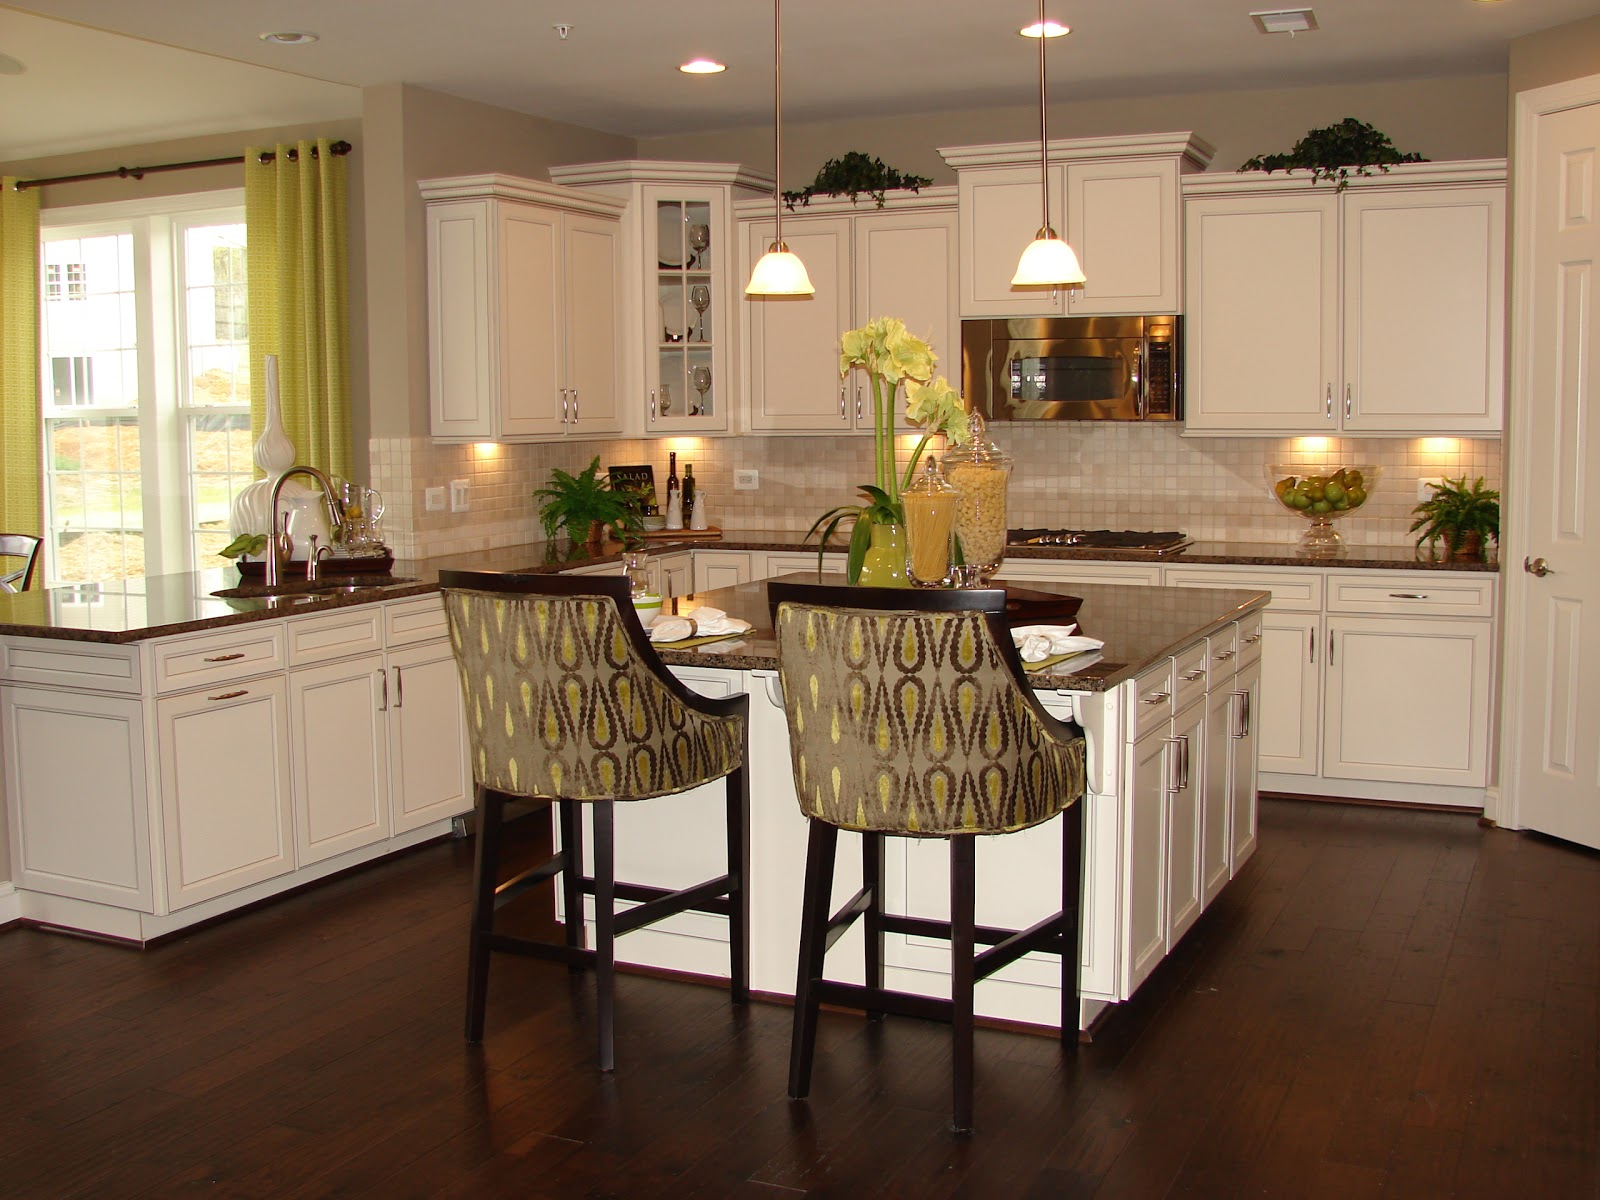 Kitchen design white cabinets home design roosa - Kitchen design ideas white cabinets ...